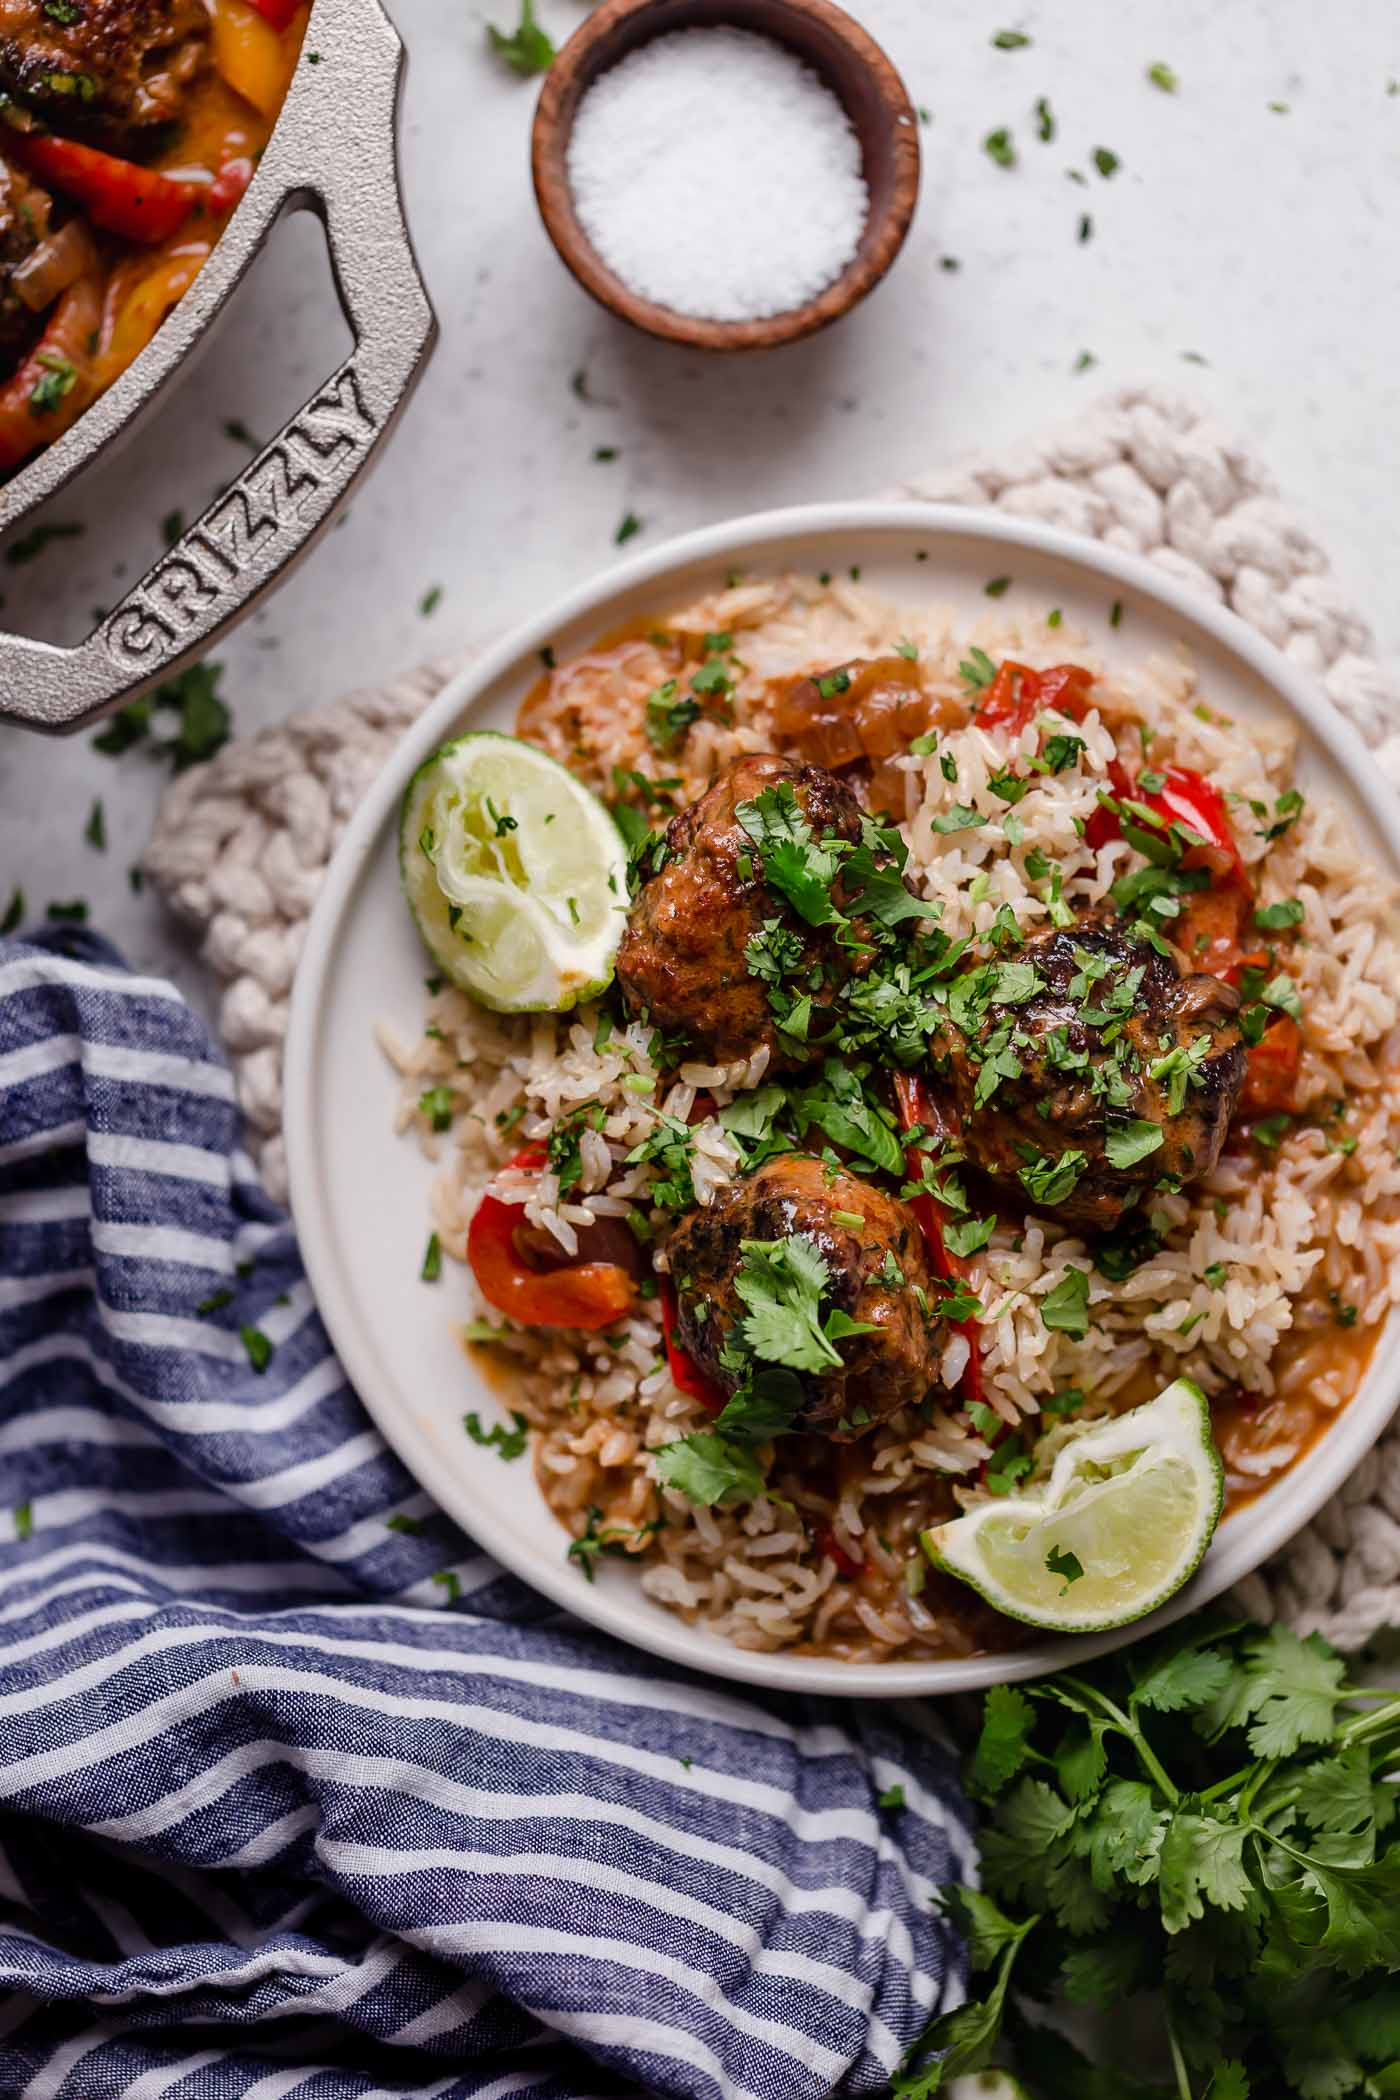 skillet red curry with ginger turkey meatballs. the creamiest red curry with onions, bell peppers, & flavorful turkey meatballs made with tons of ginger, garlic & cilantro - & the best part is it's all made in one pan! an easy & comforting skillet red curry recipe! #playswellwithbutter #redcurry #easyredcurry #turkeymeatballs #gingermeatballs #healthyrecipe #castiron #skilletrecipe #onepandinners #onepanmeal #castironrecipe